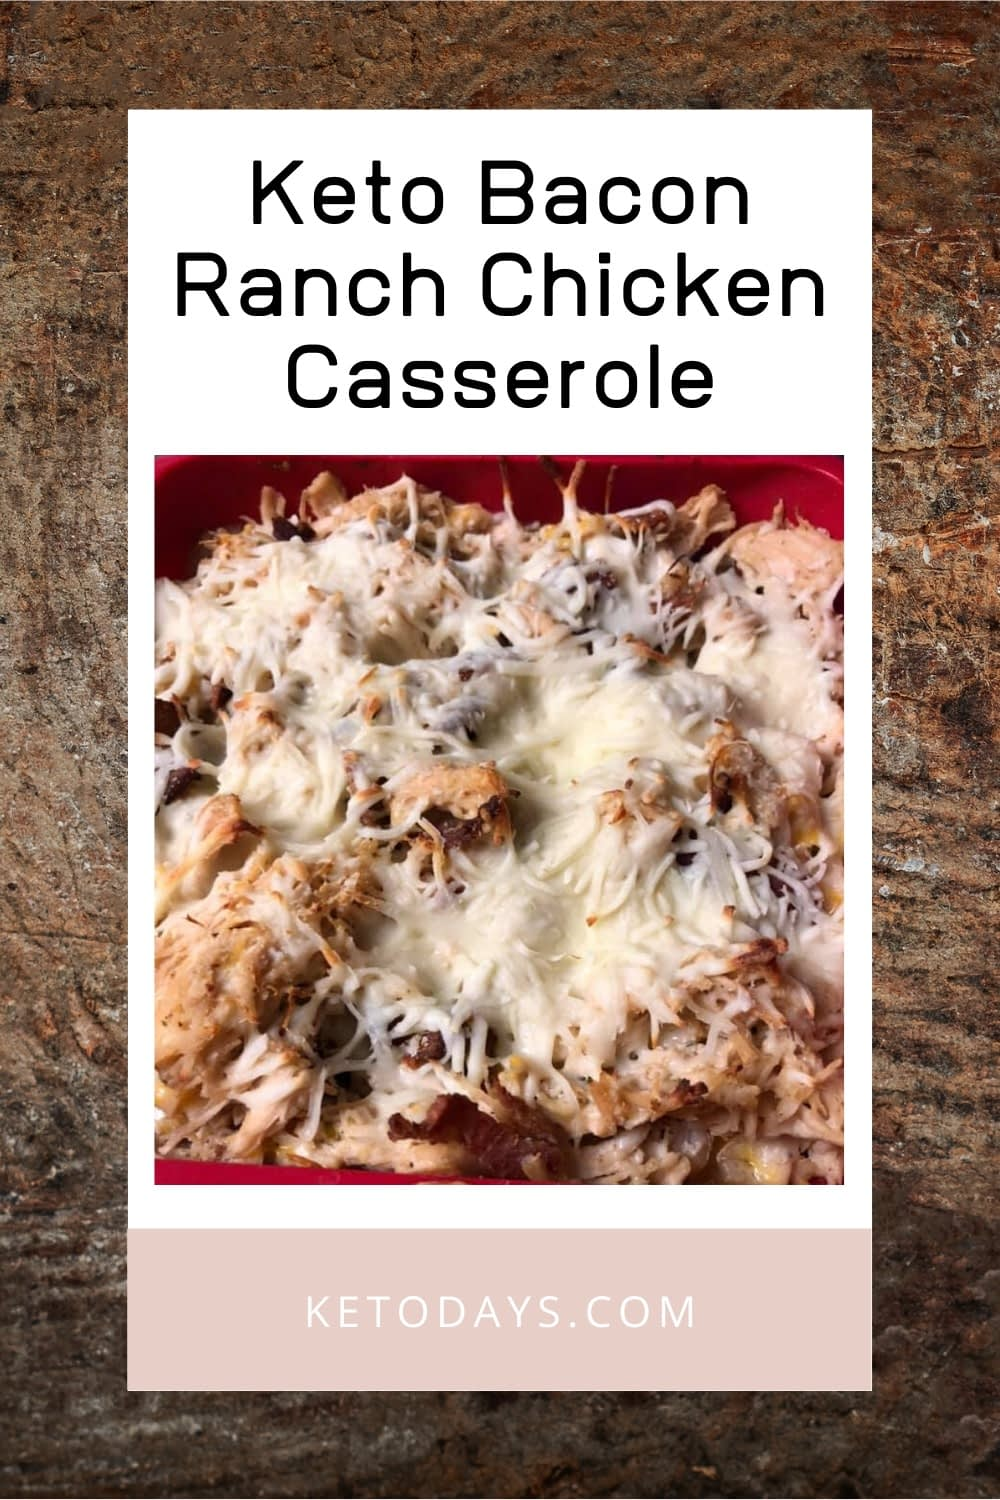 I can think of many ways to spin out this simple, Low Carb, Keto, Bacon Ranch Chicken Casserole recipe. You could add avocado, cauliflower rice, spinach, broccoli, other other favorite mix.